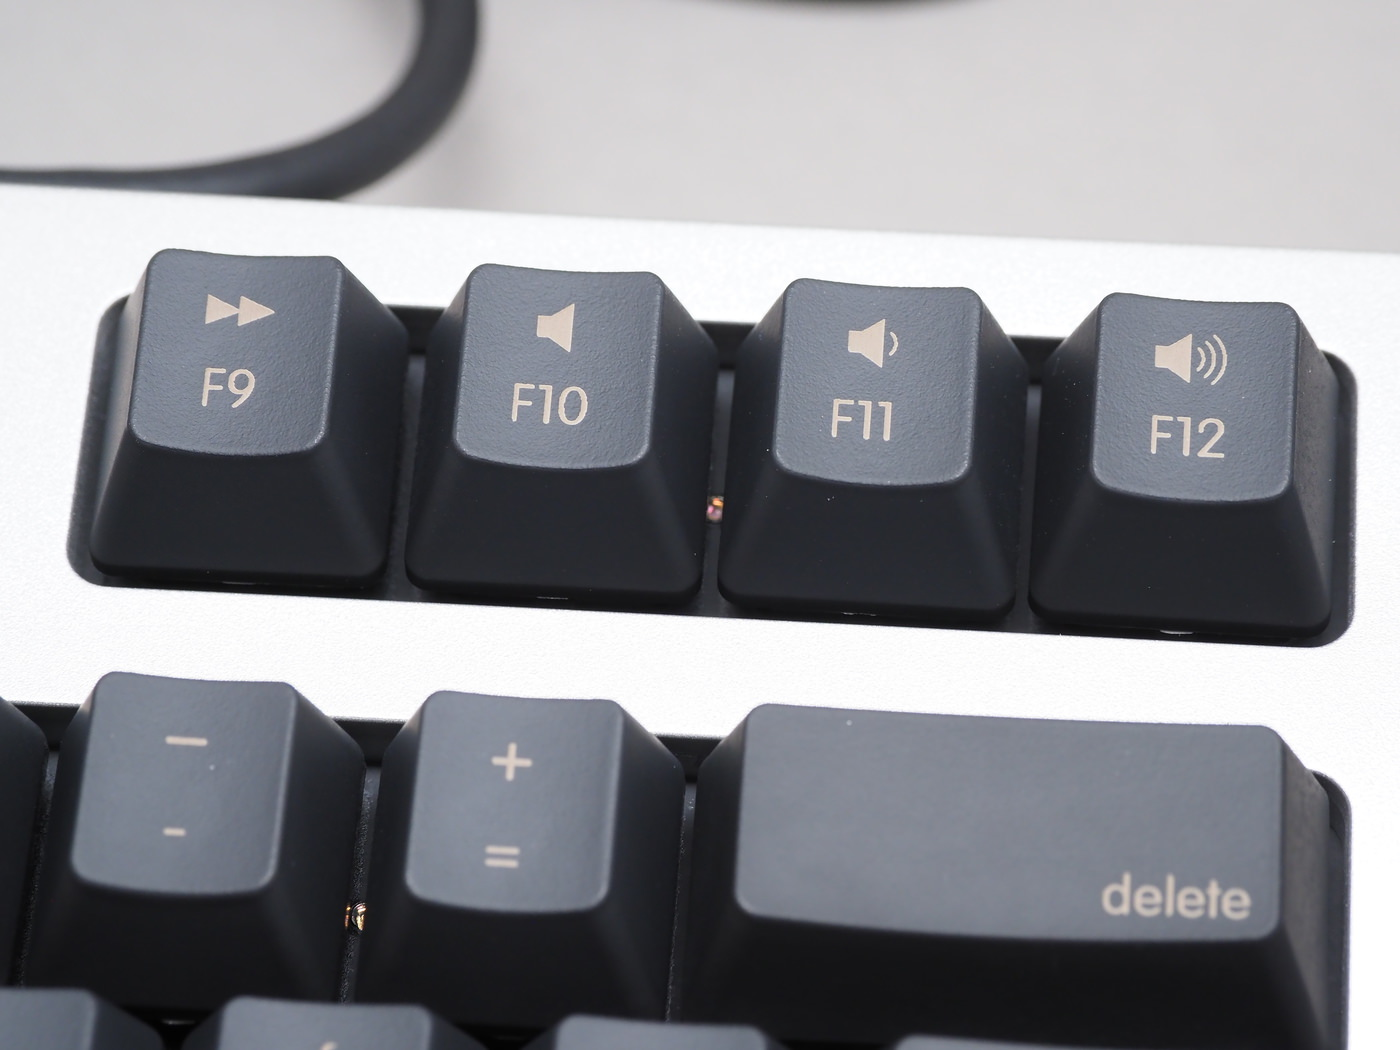 realforce-tkl-for-mac-pfu-limited-edition-review_00017